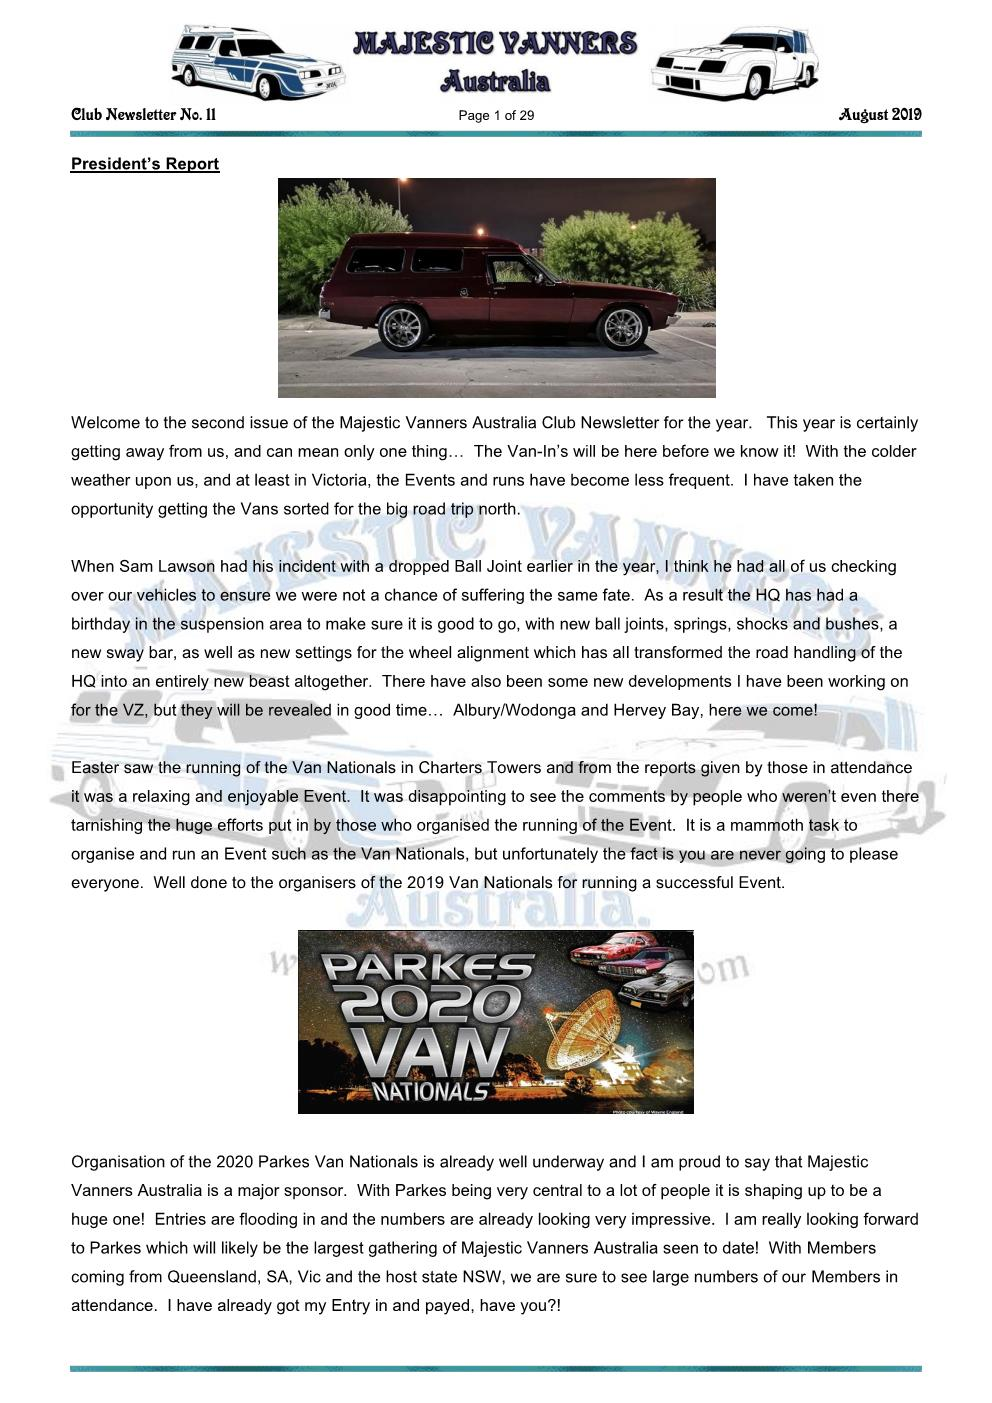 MAJESTIC VANNERS Newsletter Issue No: 11 August 2019 Mv_new41